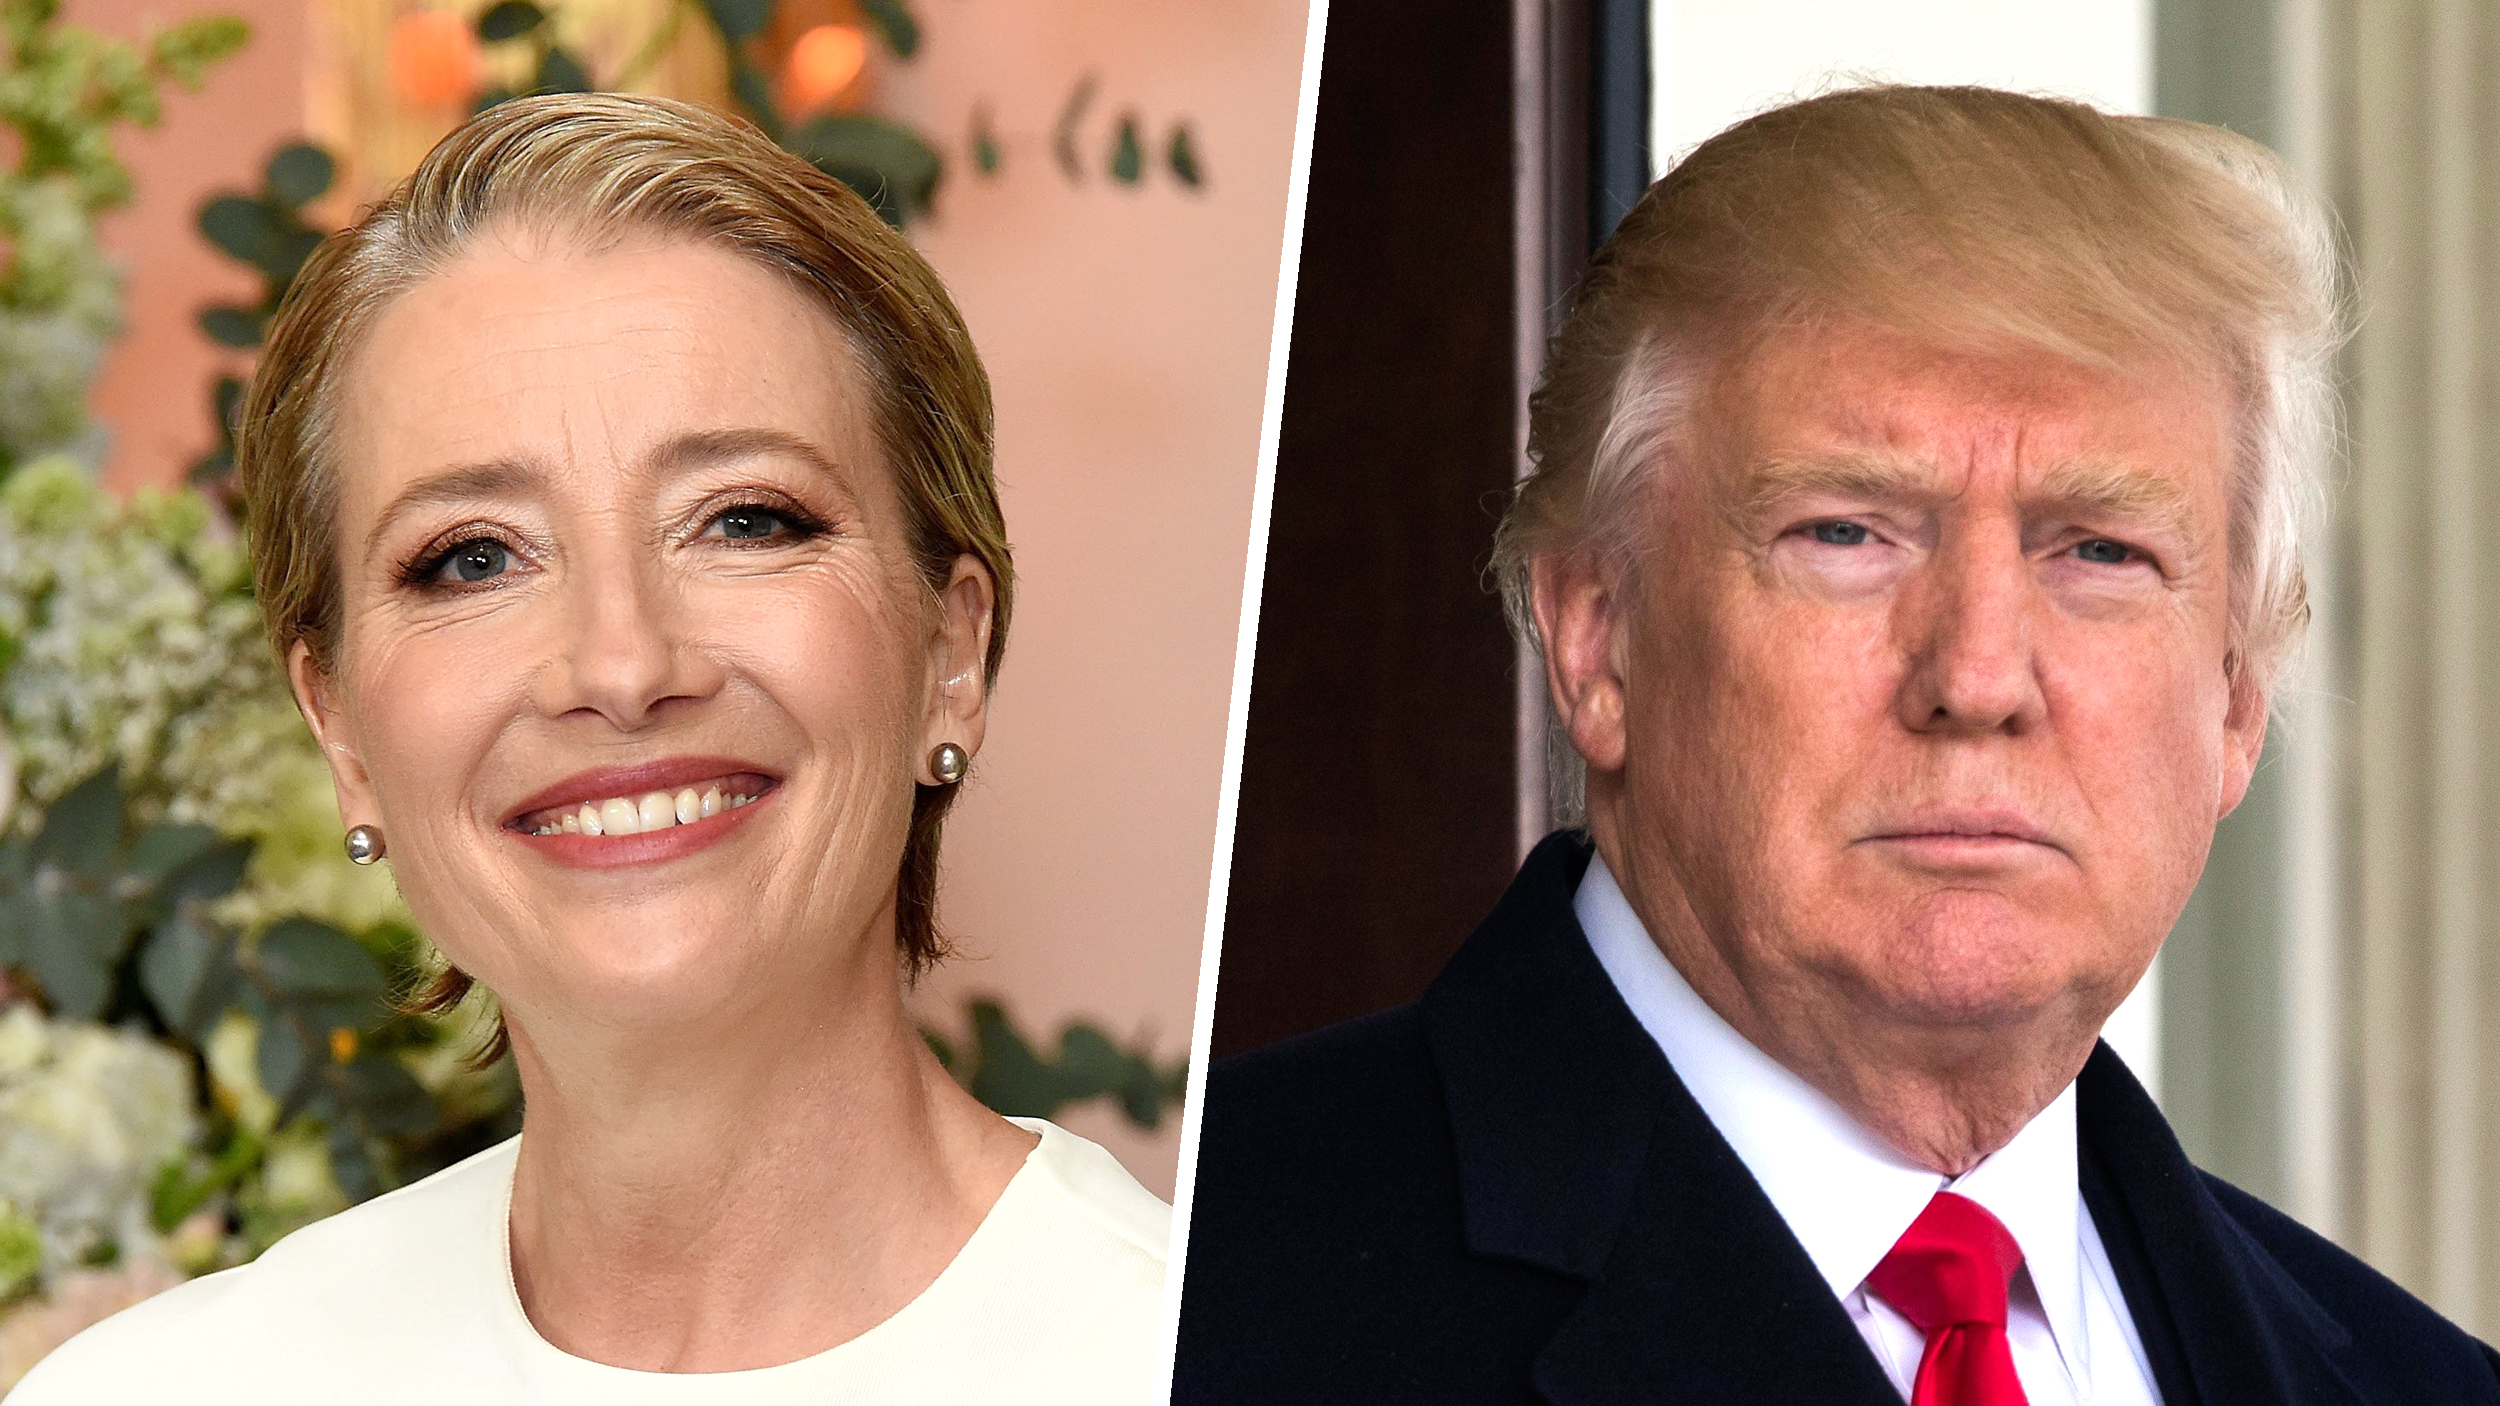 Emma Thompson reveals Donald Trump once asked her on a date